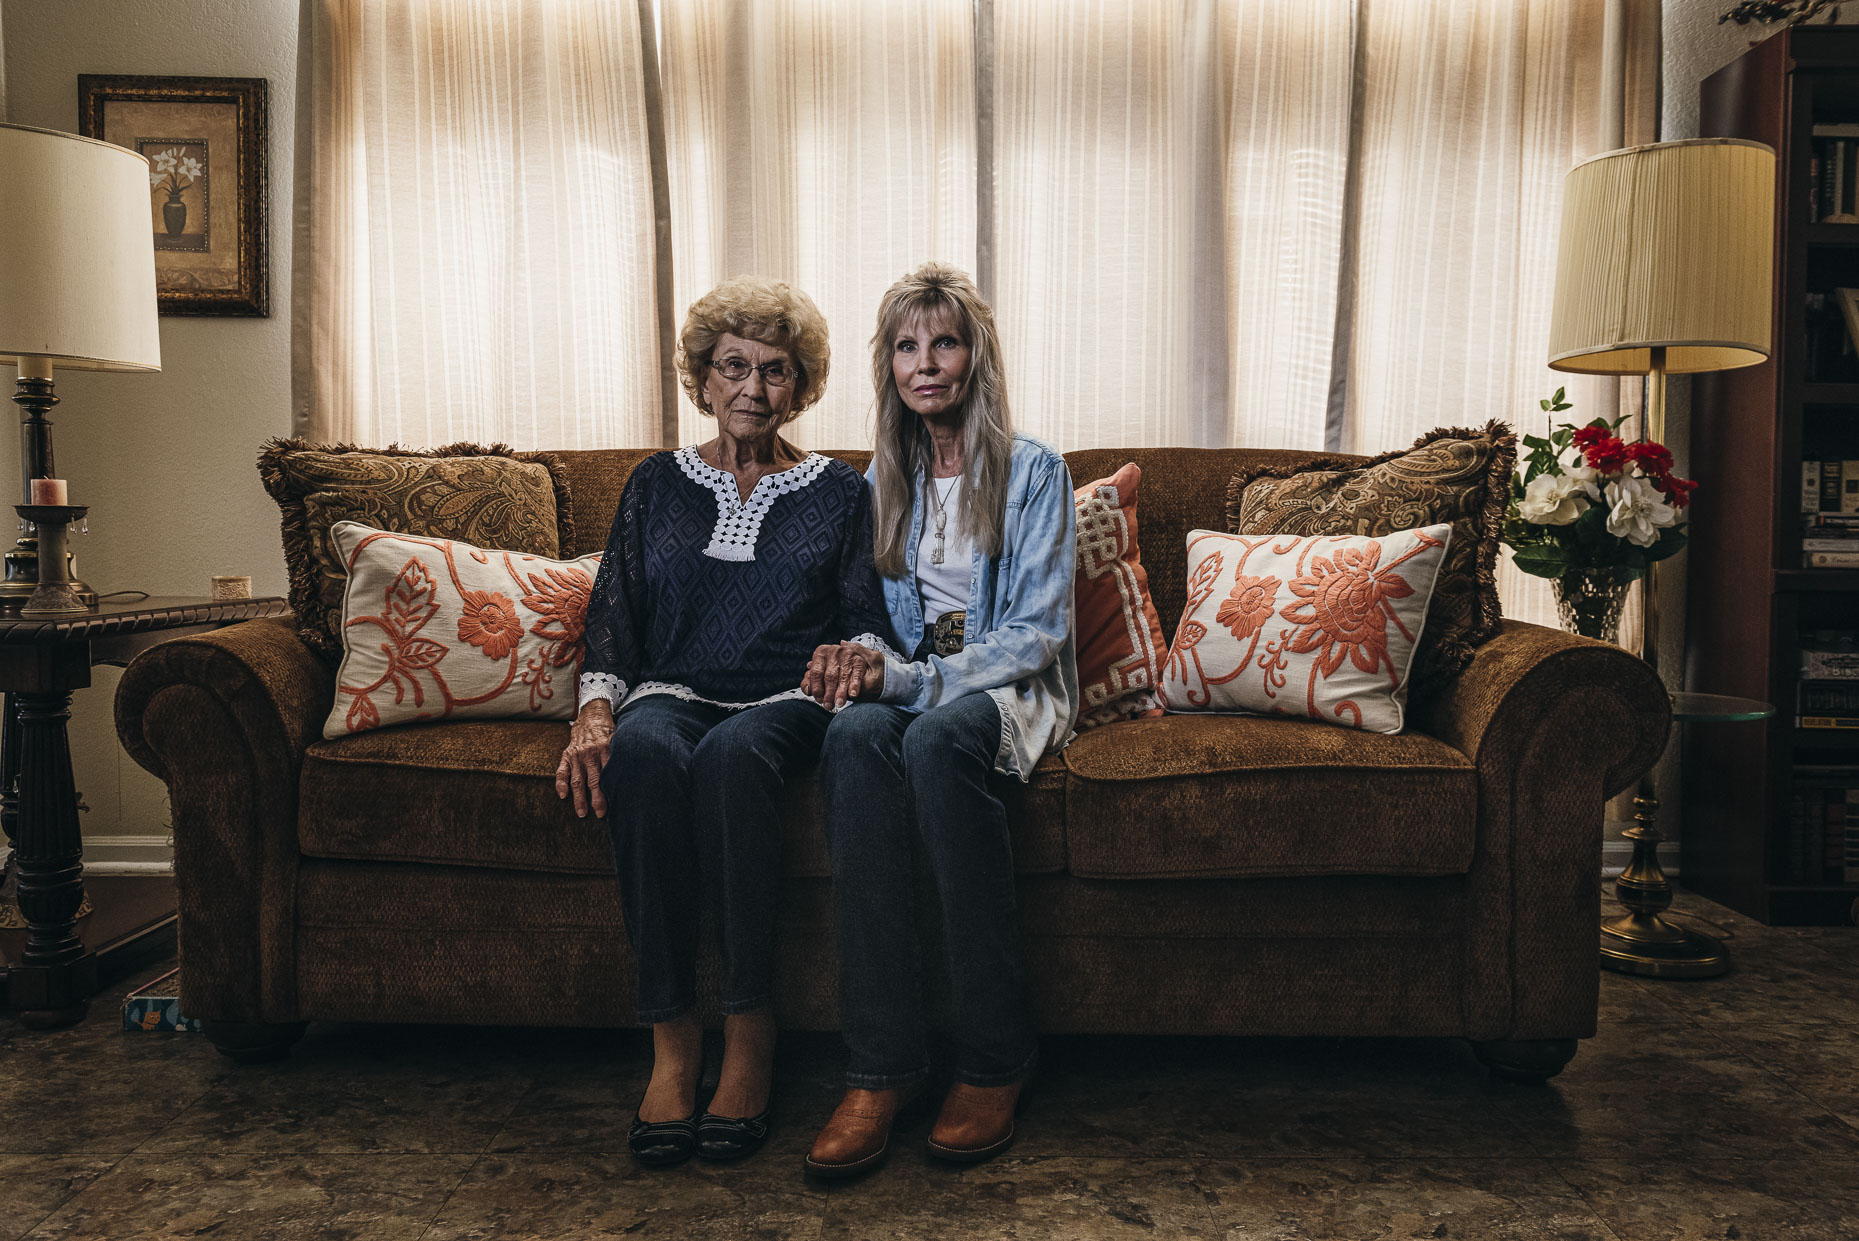 Elderly-mother-and-daughter-portrait-documentary-South-Texas